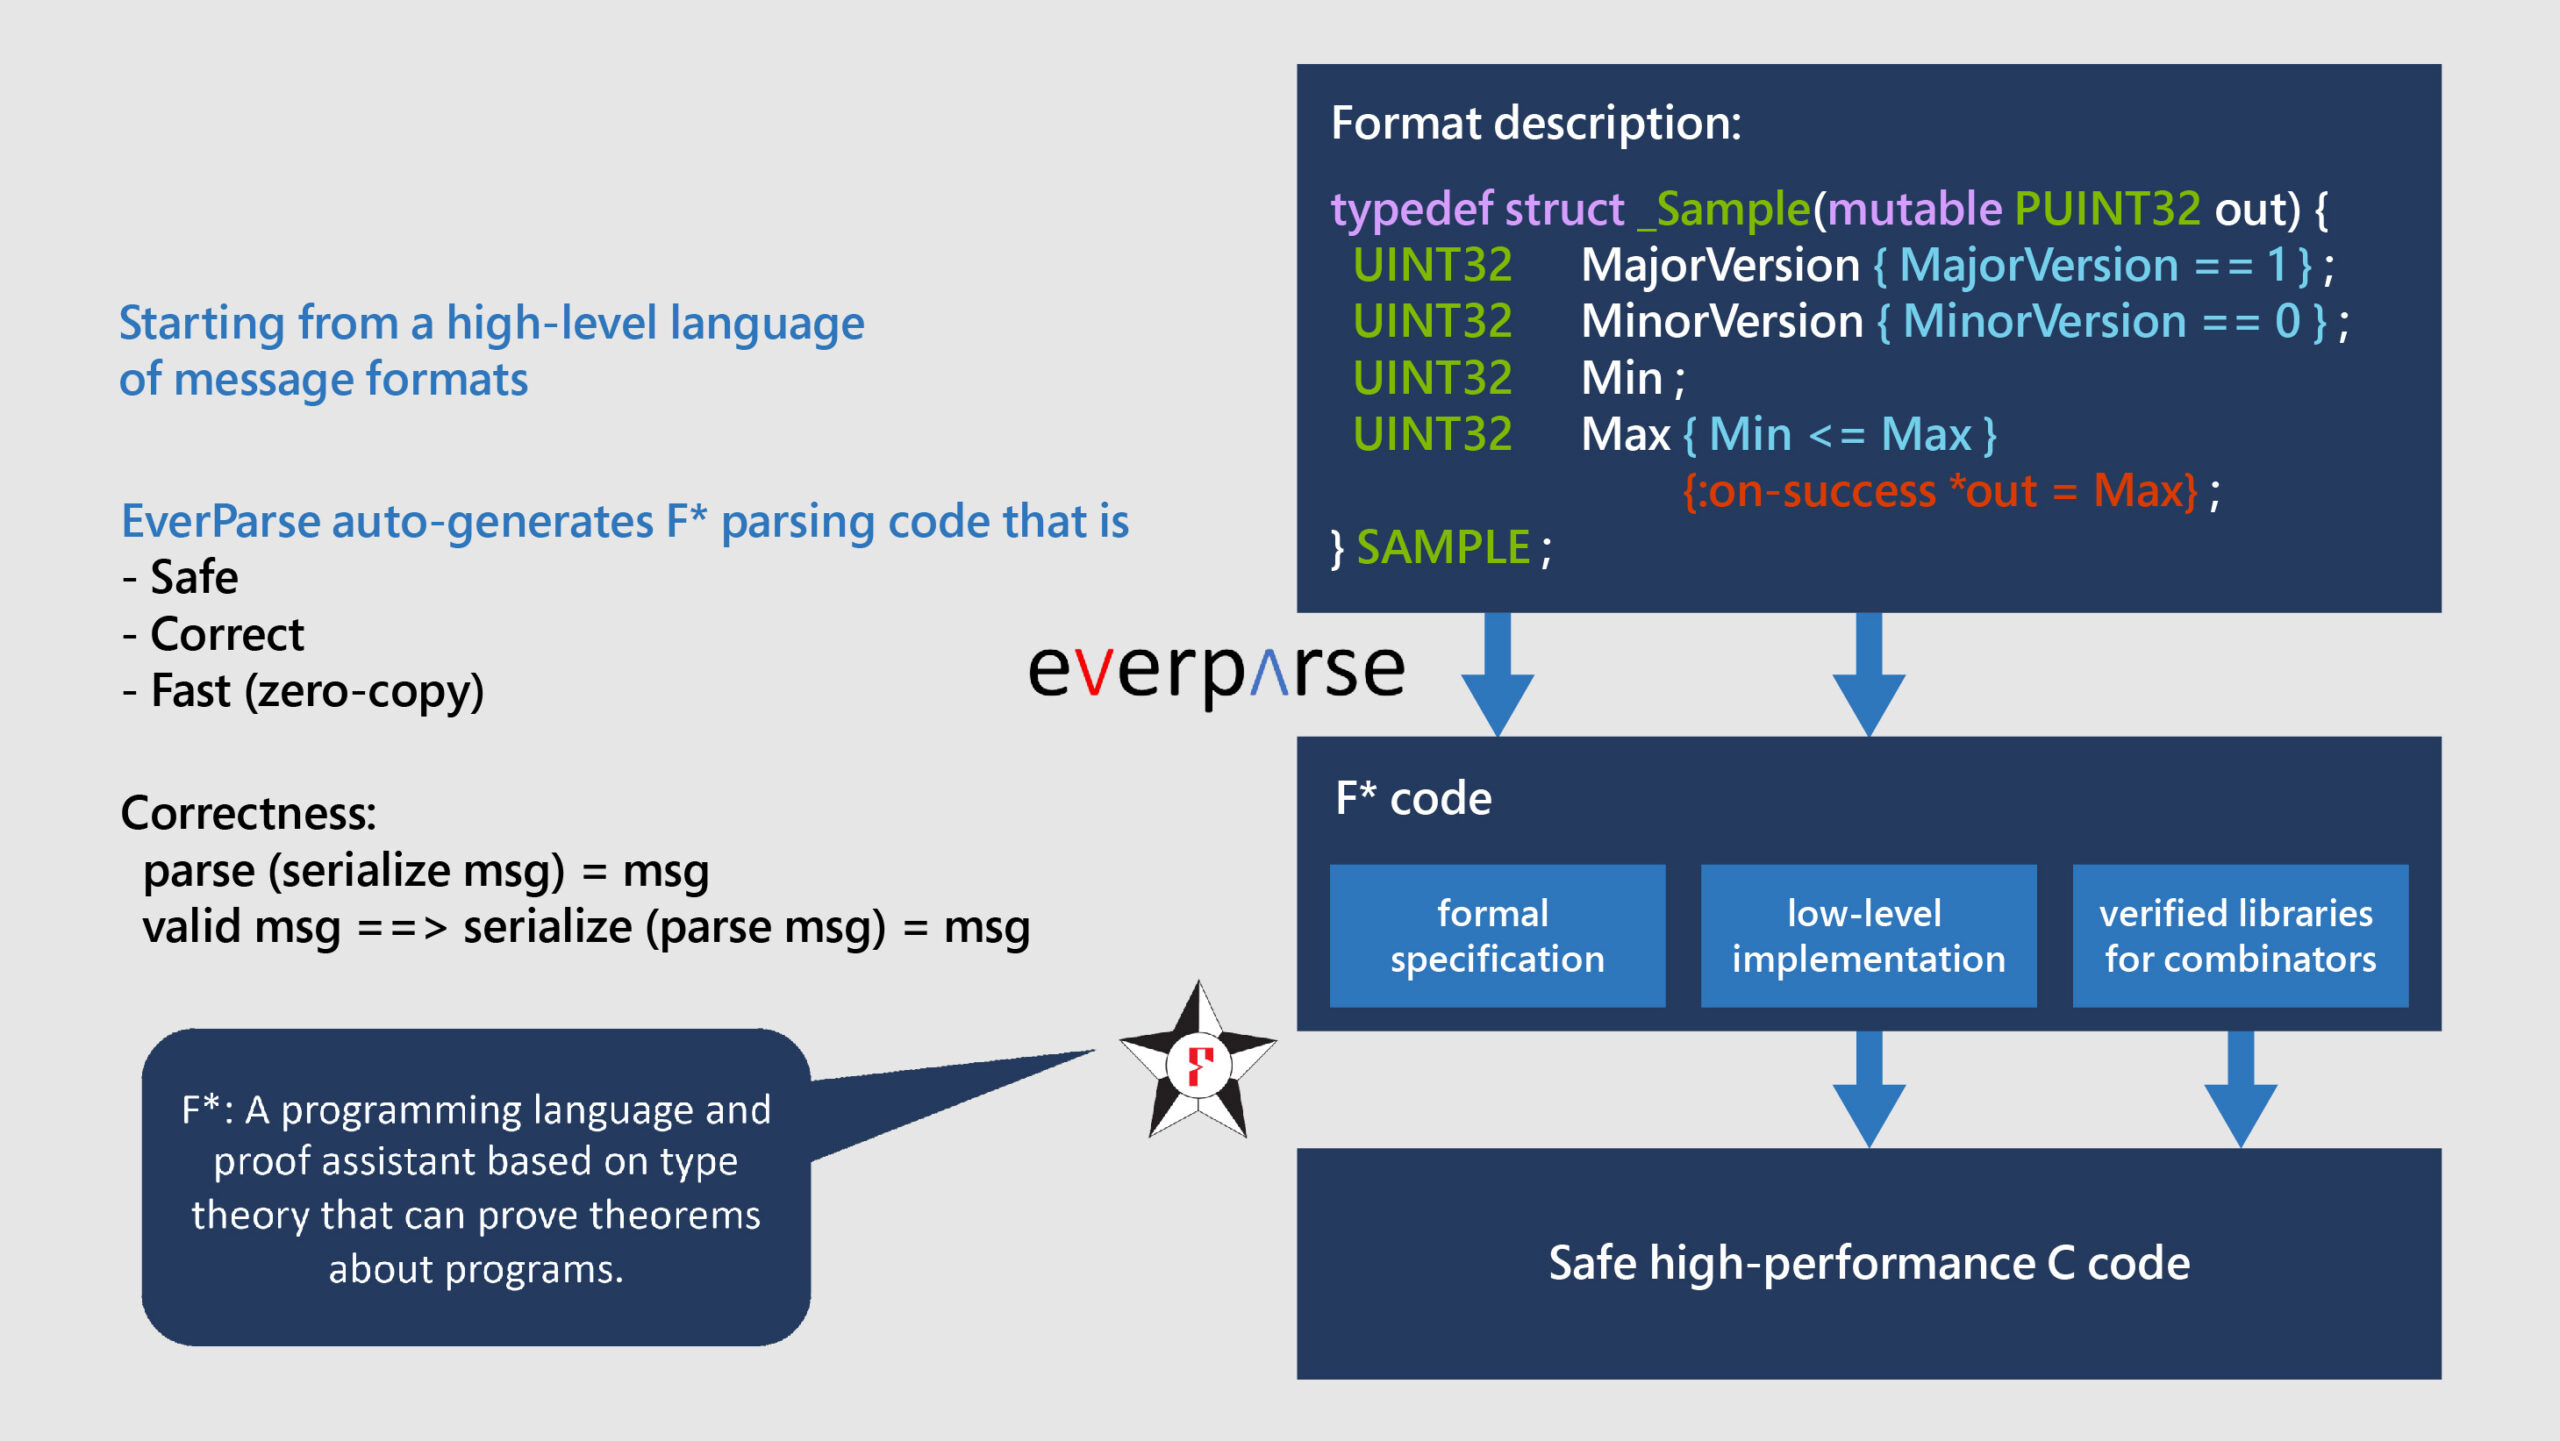 "An animation showing an example of a high-level language message format specified by EverParse. From the message, two arrows labeled ""EverParse"" point to a rectangle labeled ""formal specification"" and a rectangle labeled ""low-level implementation,"" respectively, inside a larger rectangle labeled ""F* code."" The figure represents EverParse's ability to automatically generate safe, correct, and fast F* parsing code. ""Correctness"" is defined as ""Correctness: ​parse (serialize msg) = msg​"" and ""valid msg ==> serialize (parse msg) = msg​."" The F* logo appears with the description that F* is a type theory–based programming language and proof assistant that can prove theorems about programs​. From the ""F* code"" rectangle, arrows point from the ""low-level implementation"" rectangle and a rectangle labeled ""verified libraries for combinators"" to a rectangle labeled ""Safe high-performance C code."""